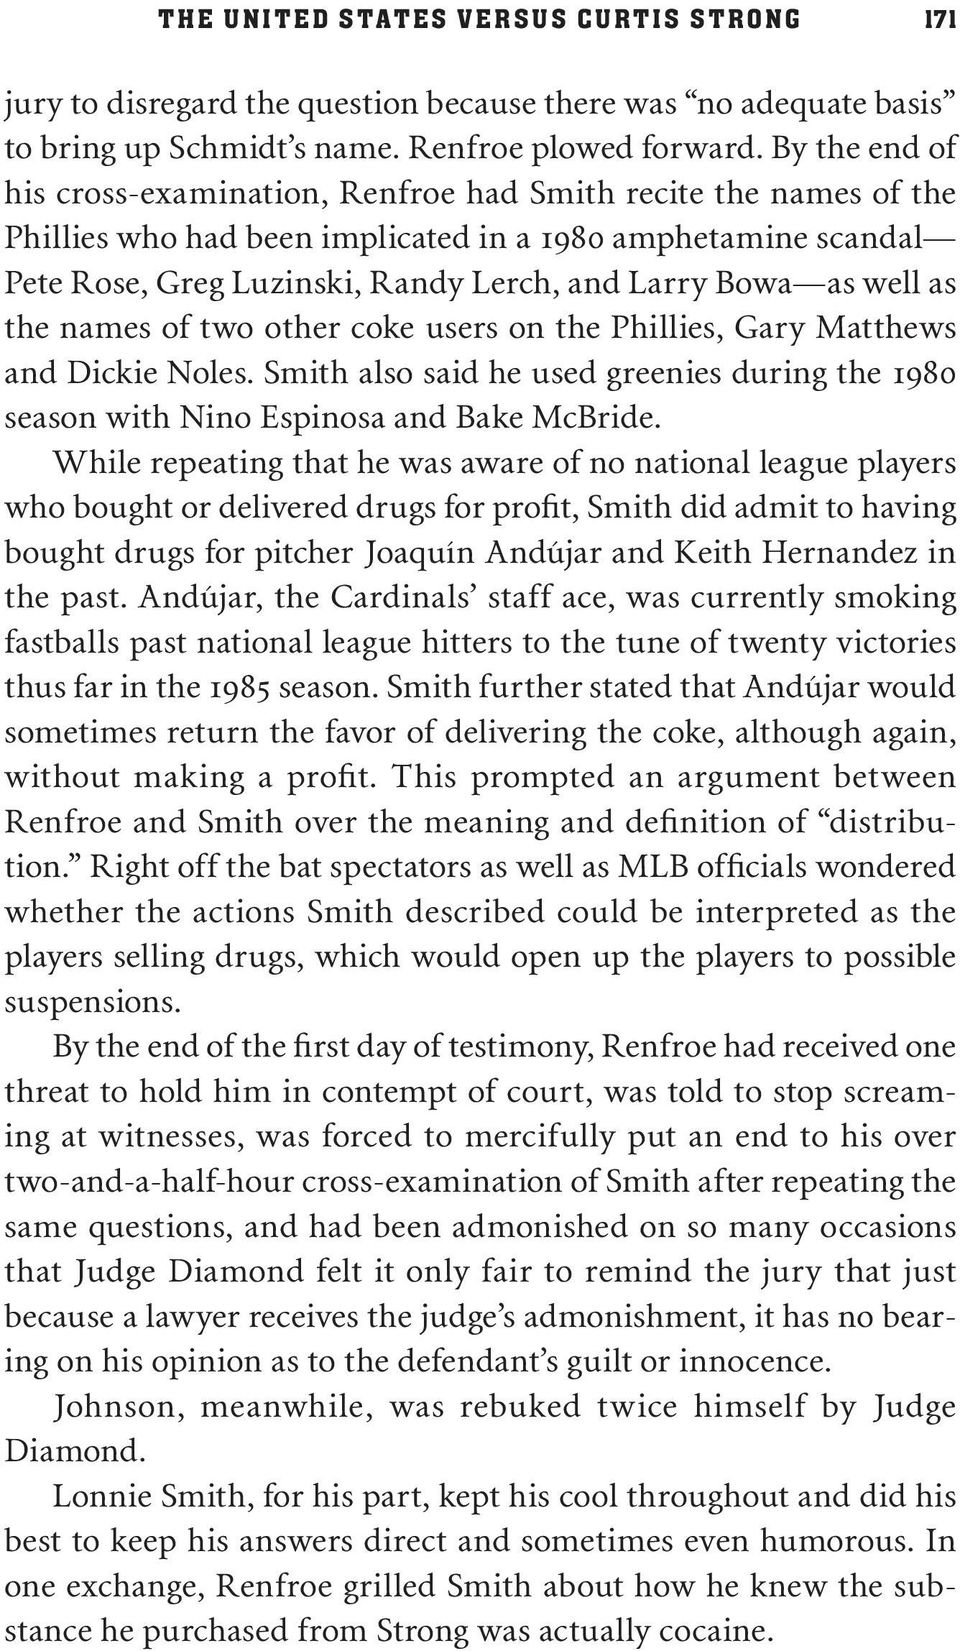 well as the names of two other coke users on the Phillies, Gary Matthews and Dickie Noles. Smith also said he used greenies during the 1980 season with Nino Espinosa and Bake McBride.